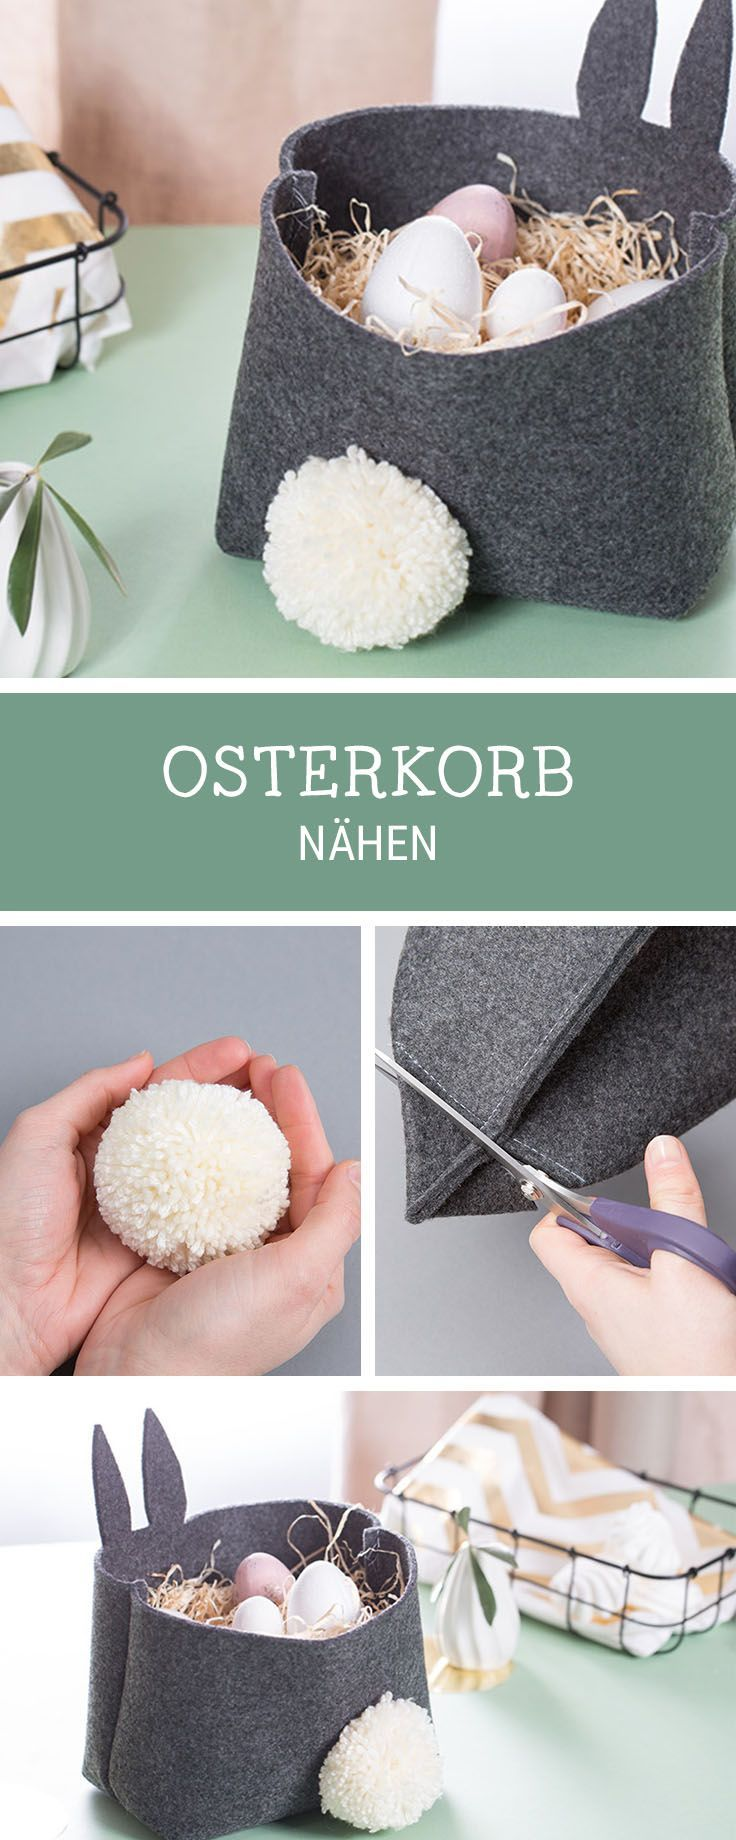 oster diy n hanleitung f r ein osterkorb aus filz ostedeko selbermachen handmade easter. Black Bedroom Furniture Sets. Home Design Ideas